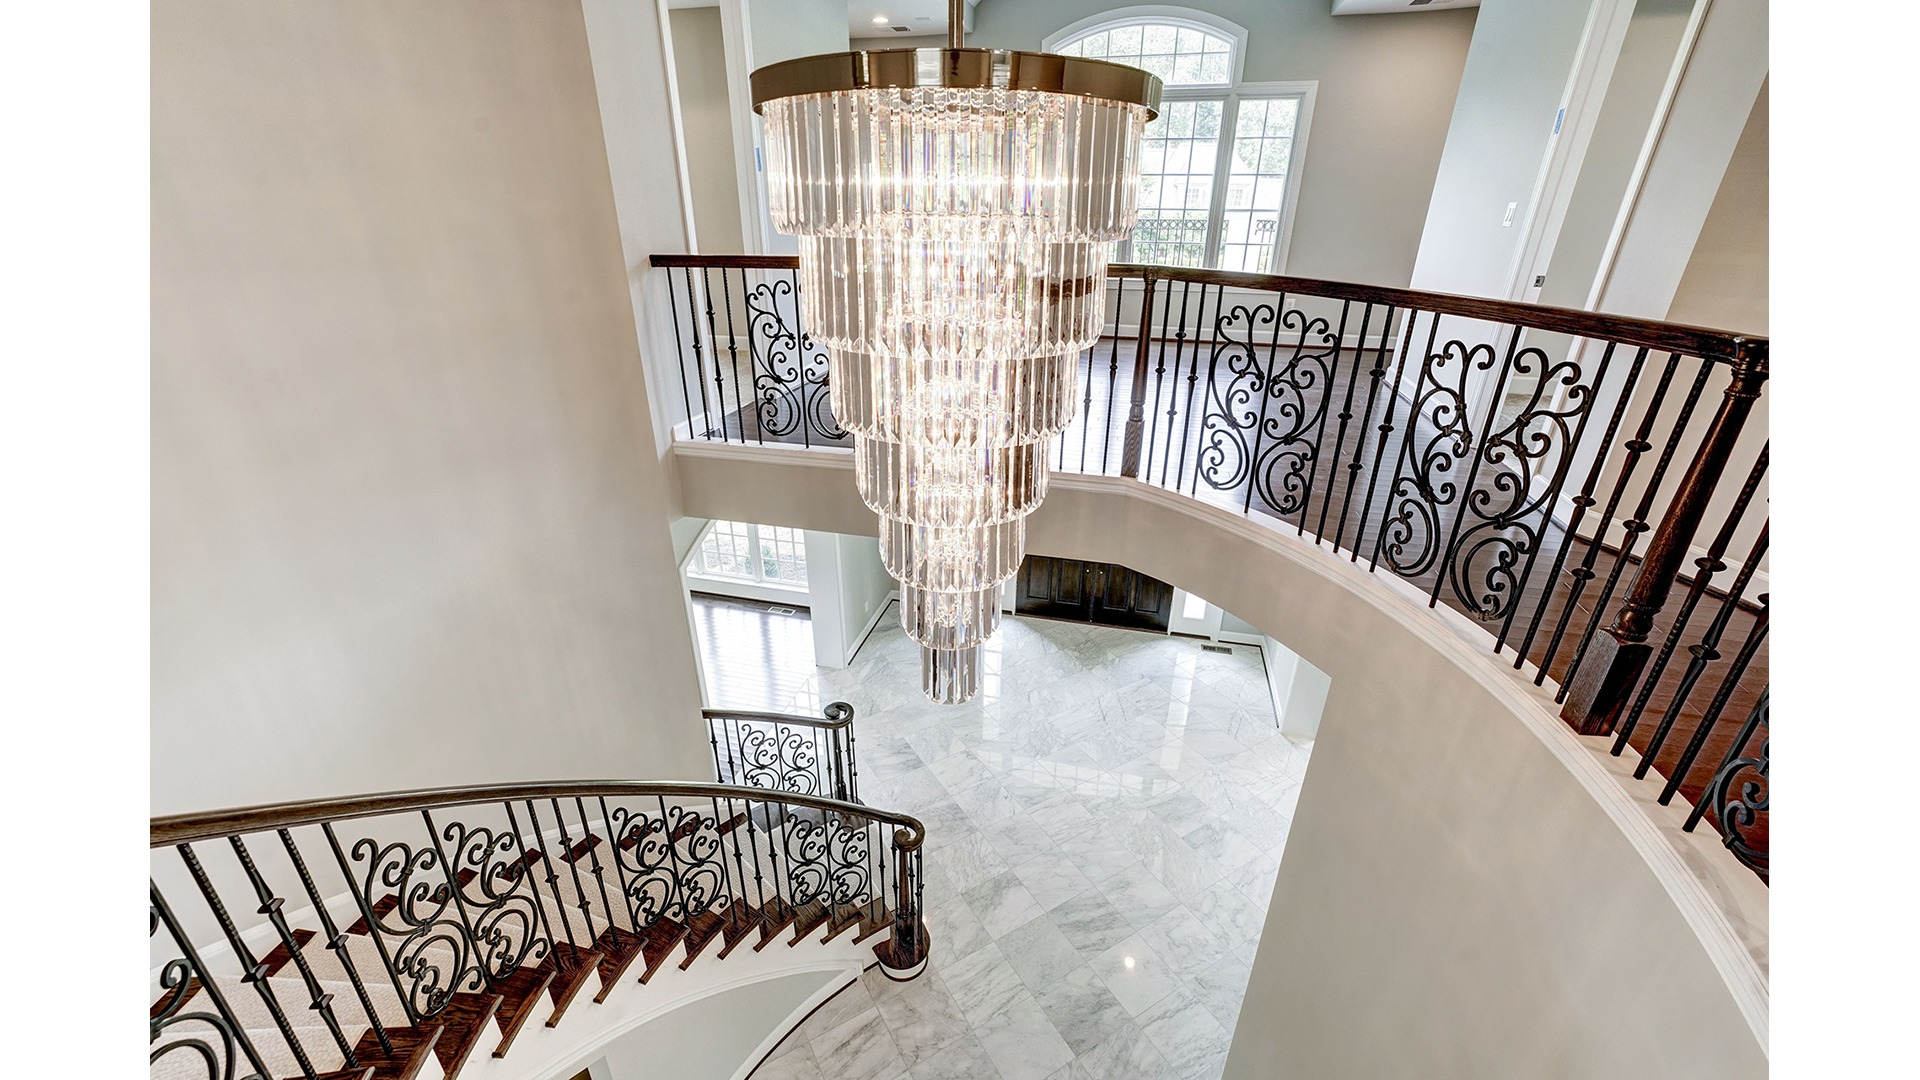 The dramatic, central chandelier in a Gulick | One custom home.